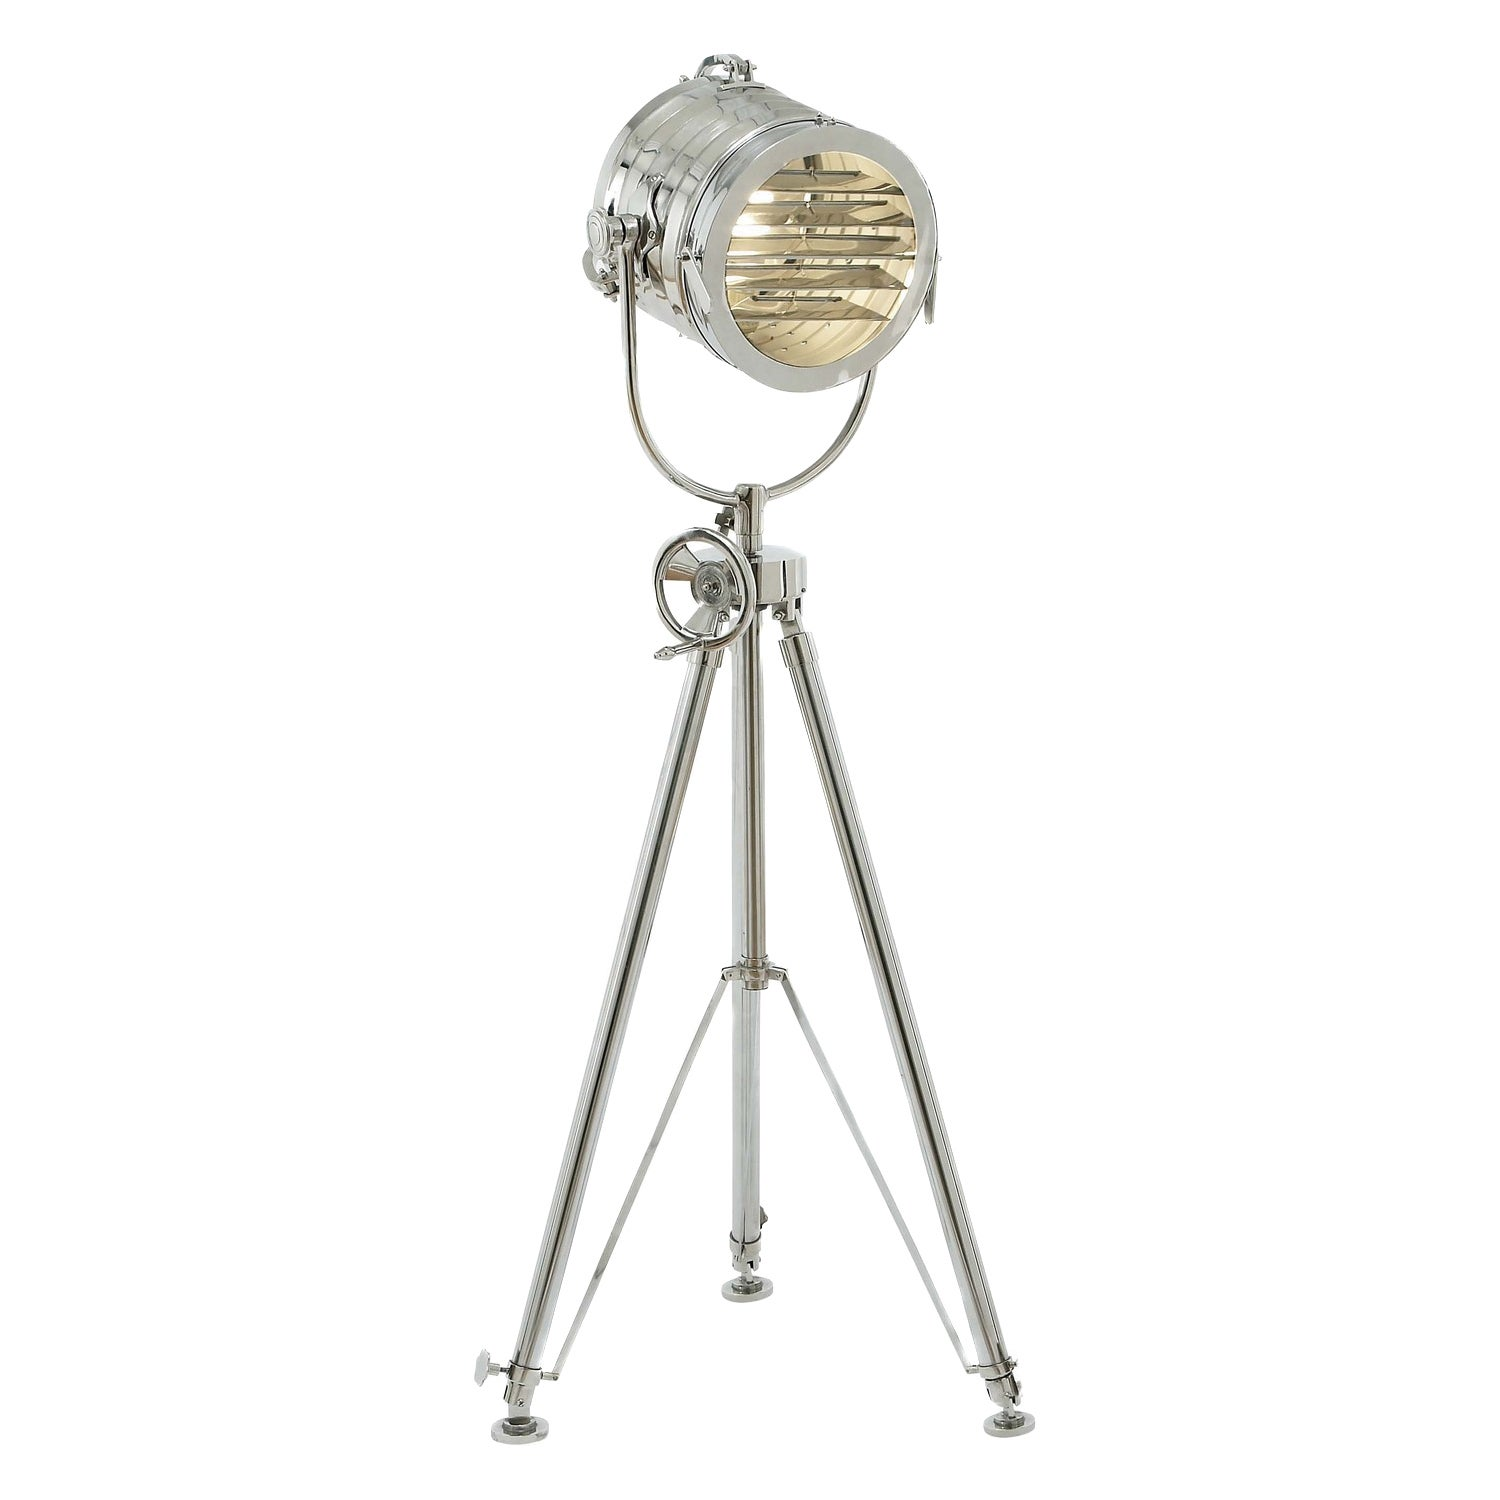 Casa Cortes 78-inch Aluminum Sealight Adjustable Tripod F...